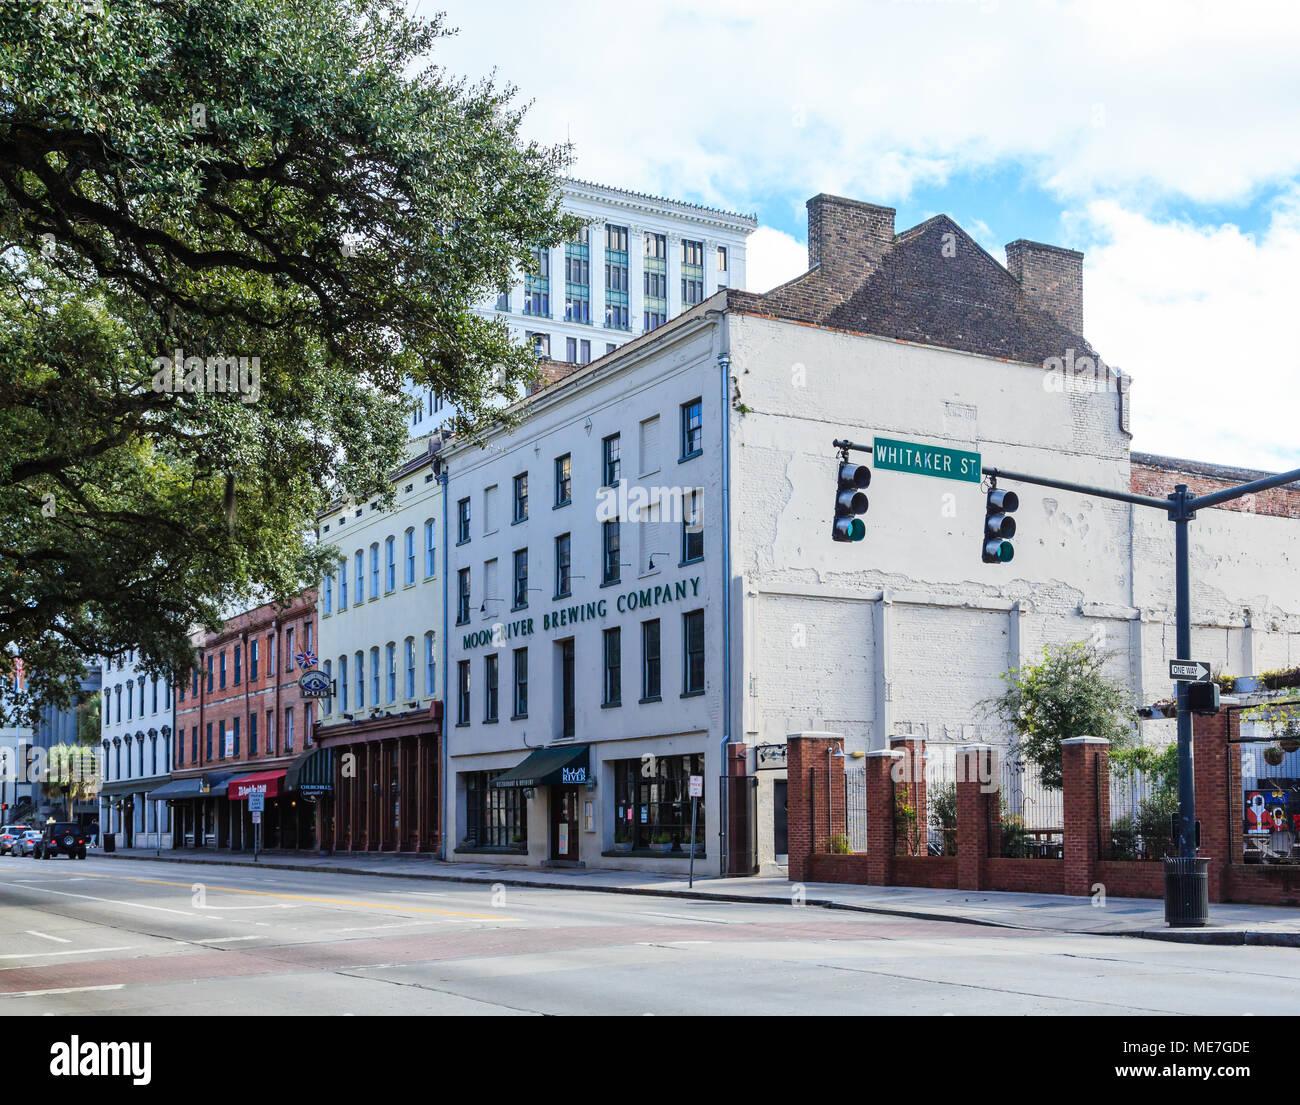 The Moon River Brewing Company In Savannah Georgia Stock Photo Alamy